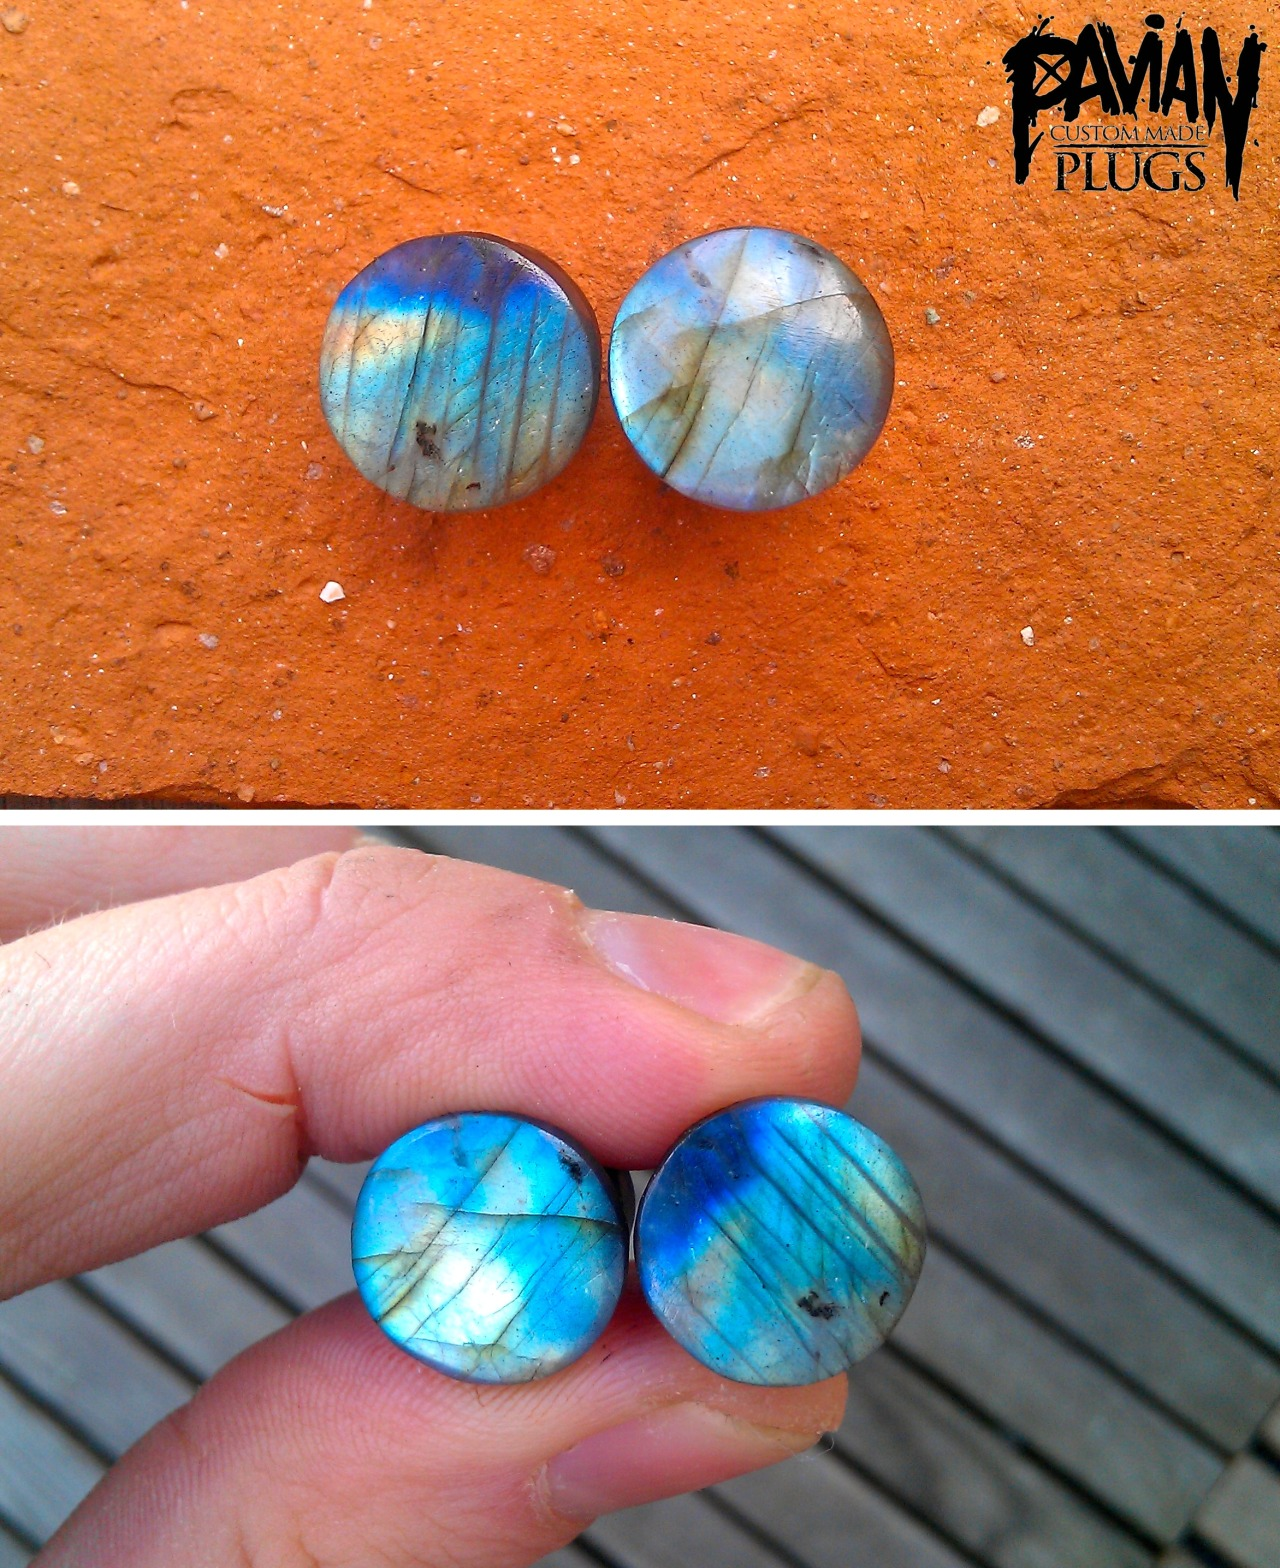 10mm labradorite with a full flash.www.facebook.com/pavianplugsorganics